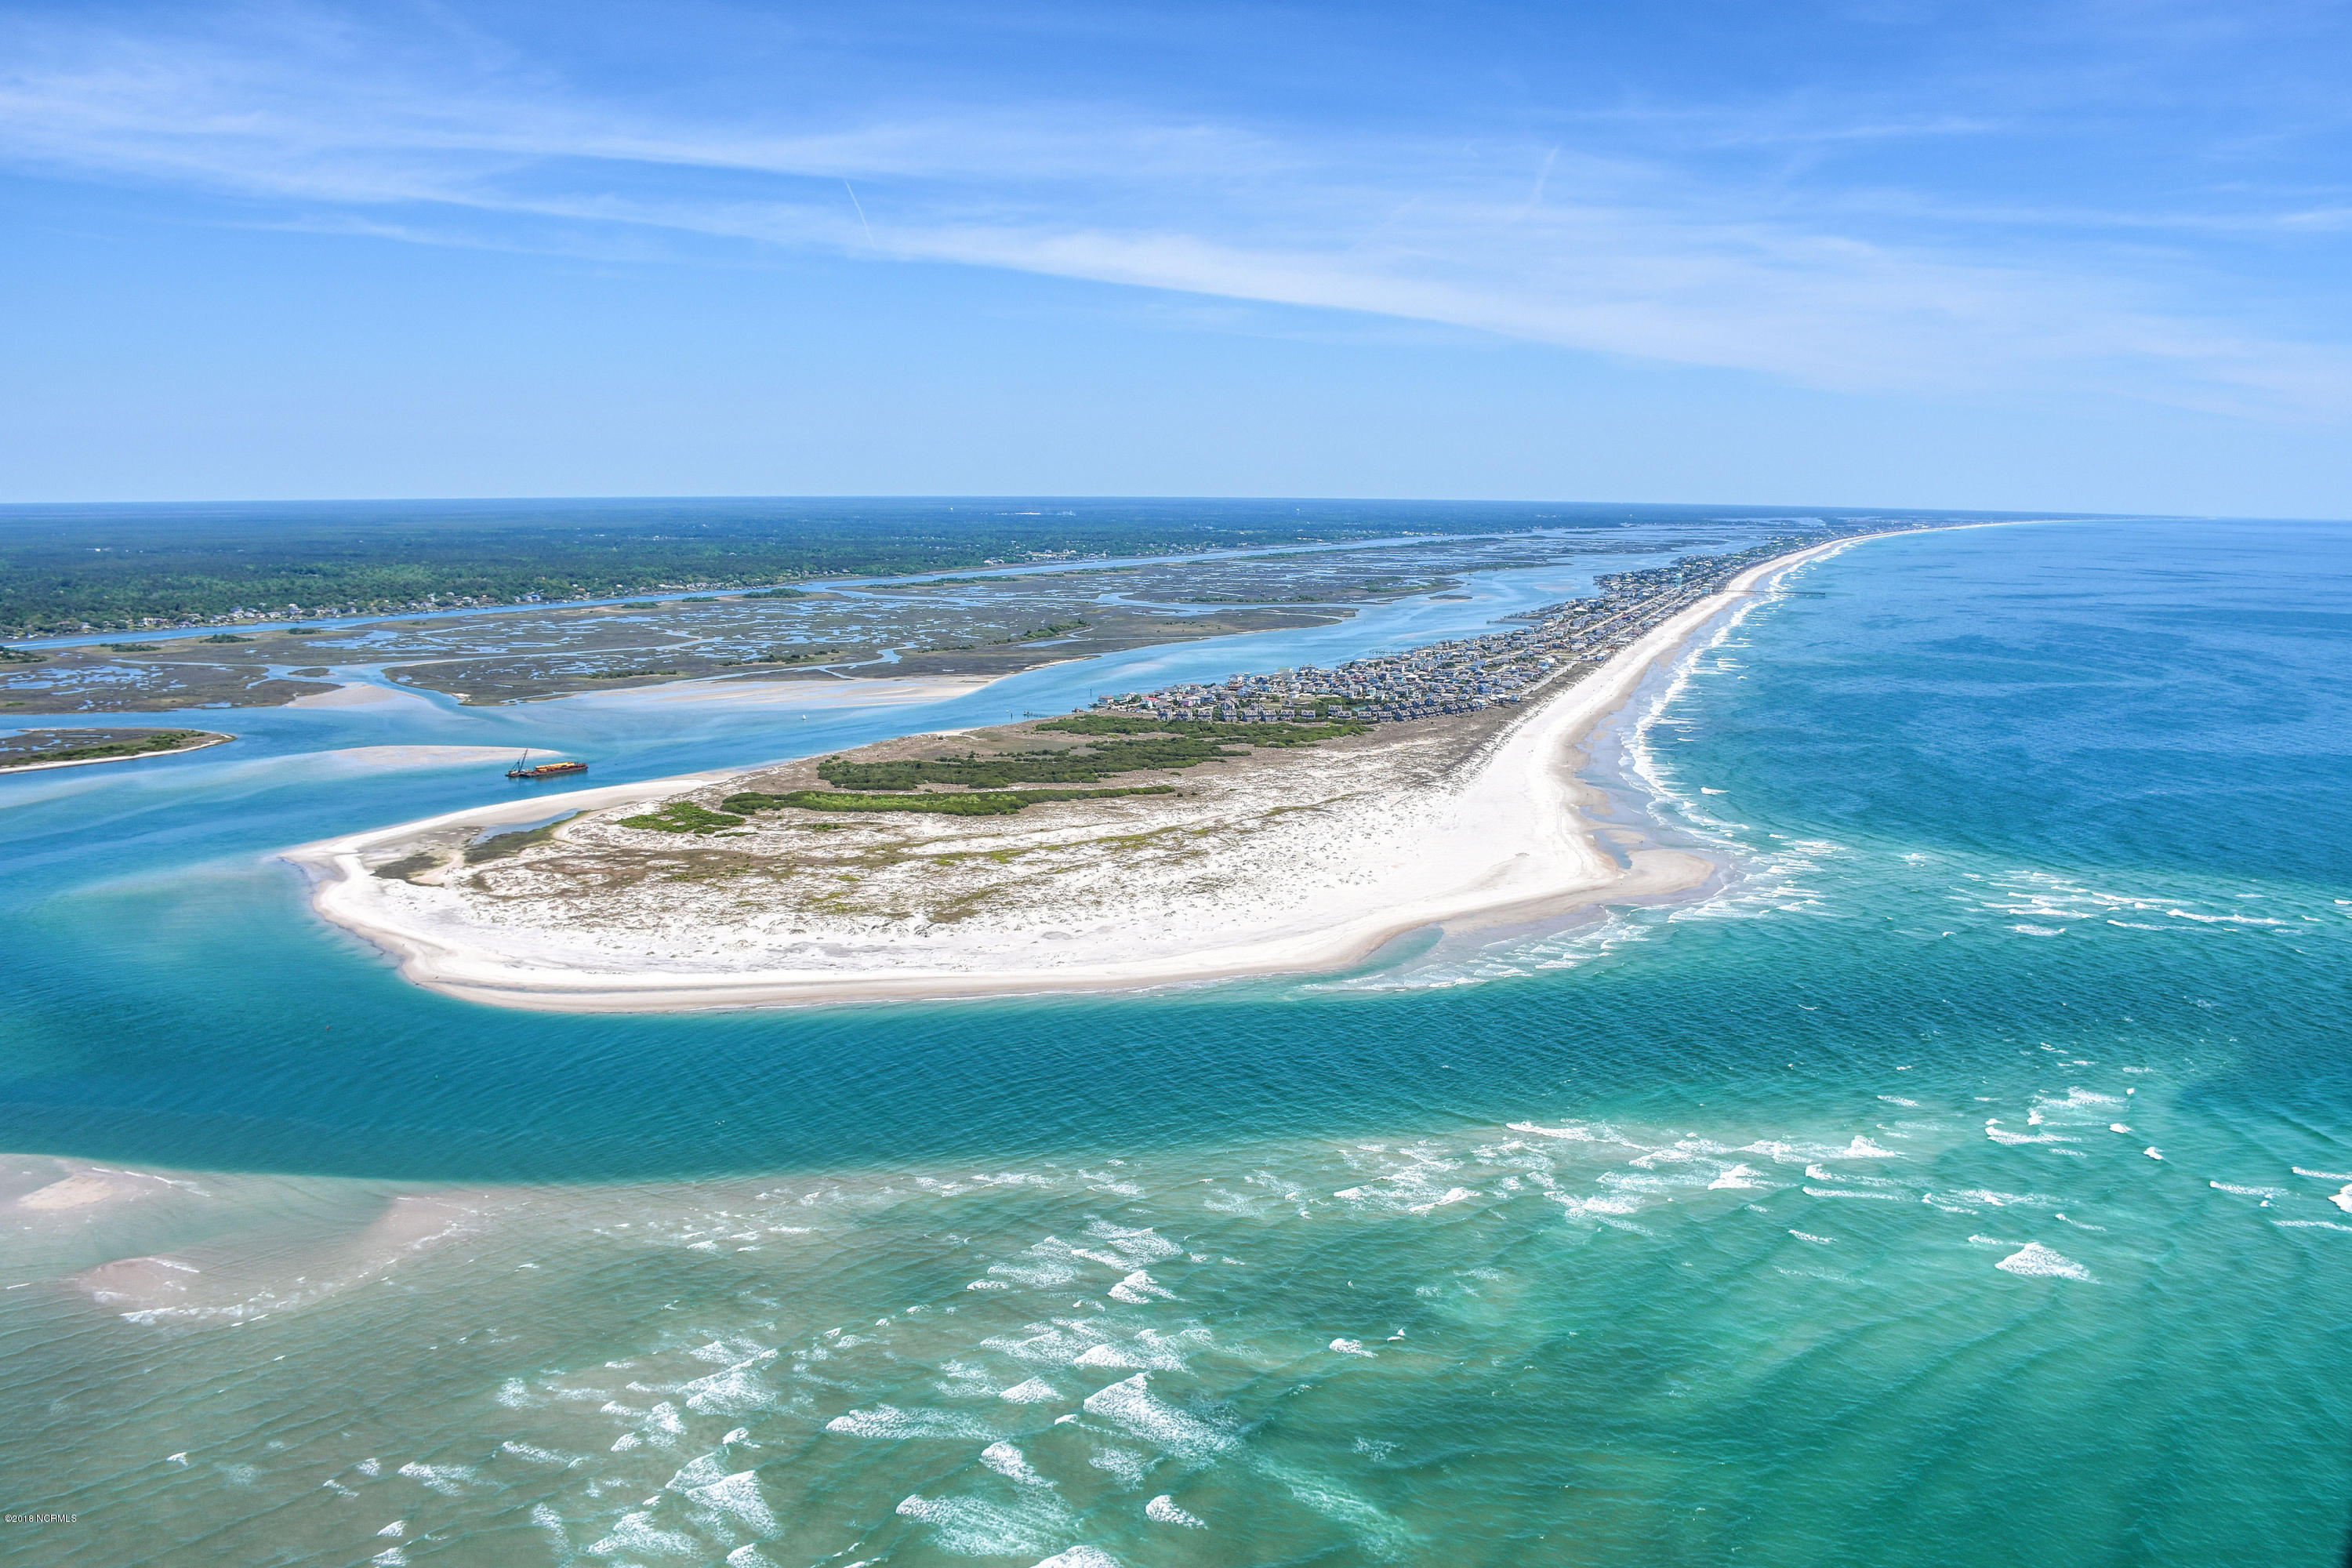 694 New River Inlet Road,North Topsail Beach,North Carolina,6 Bedrooms Bedrooms,8 Rooms Rooms,5 BathroomsBathrooms,Single family residence,New River Inlet,100131470